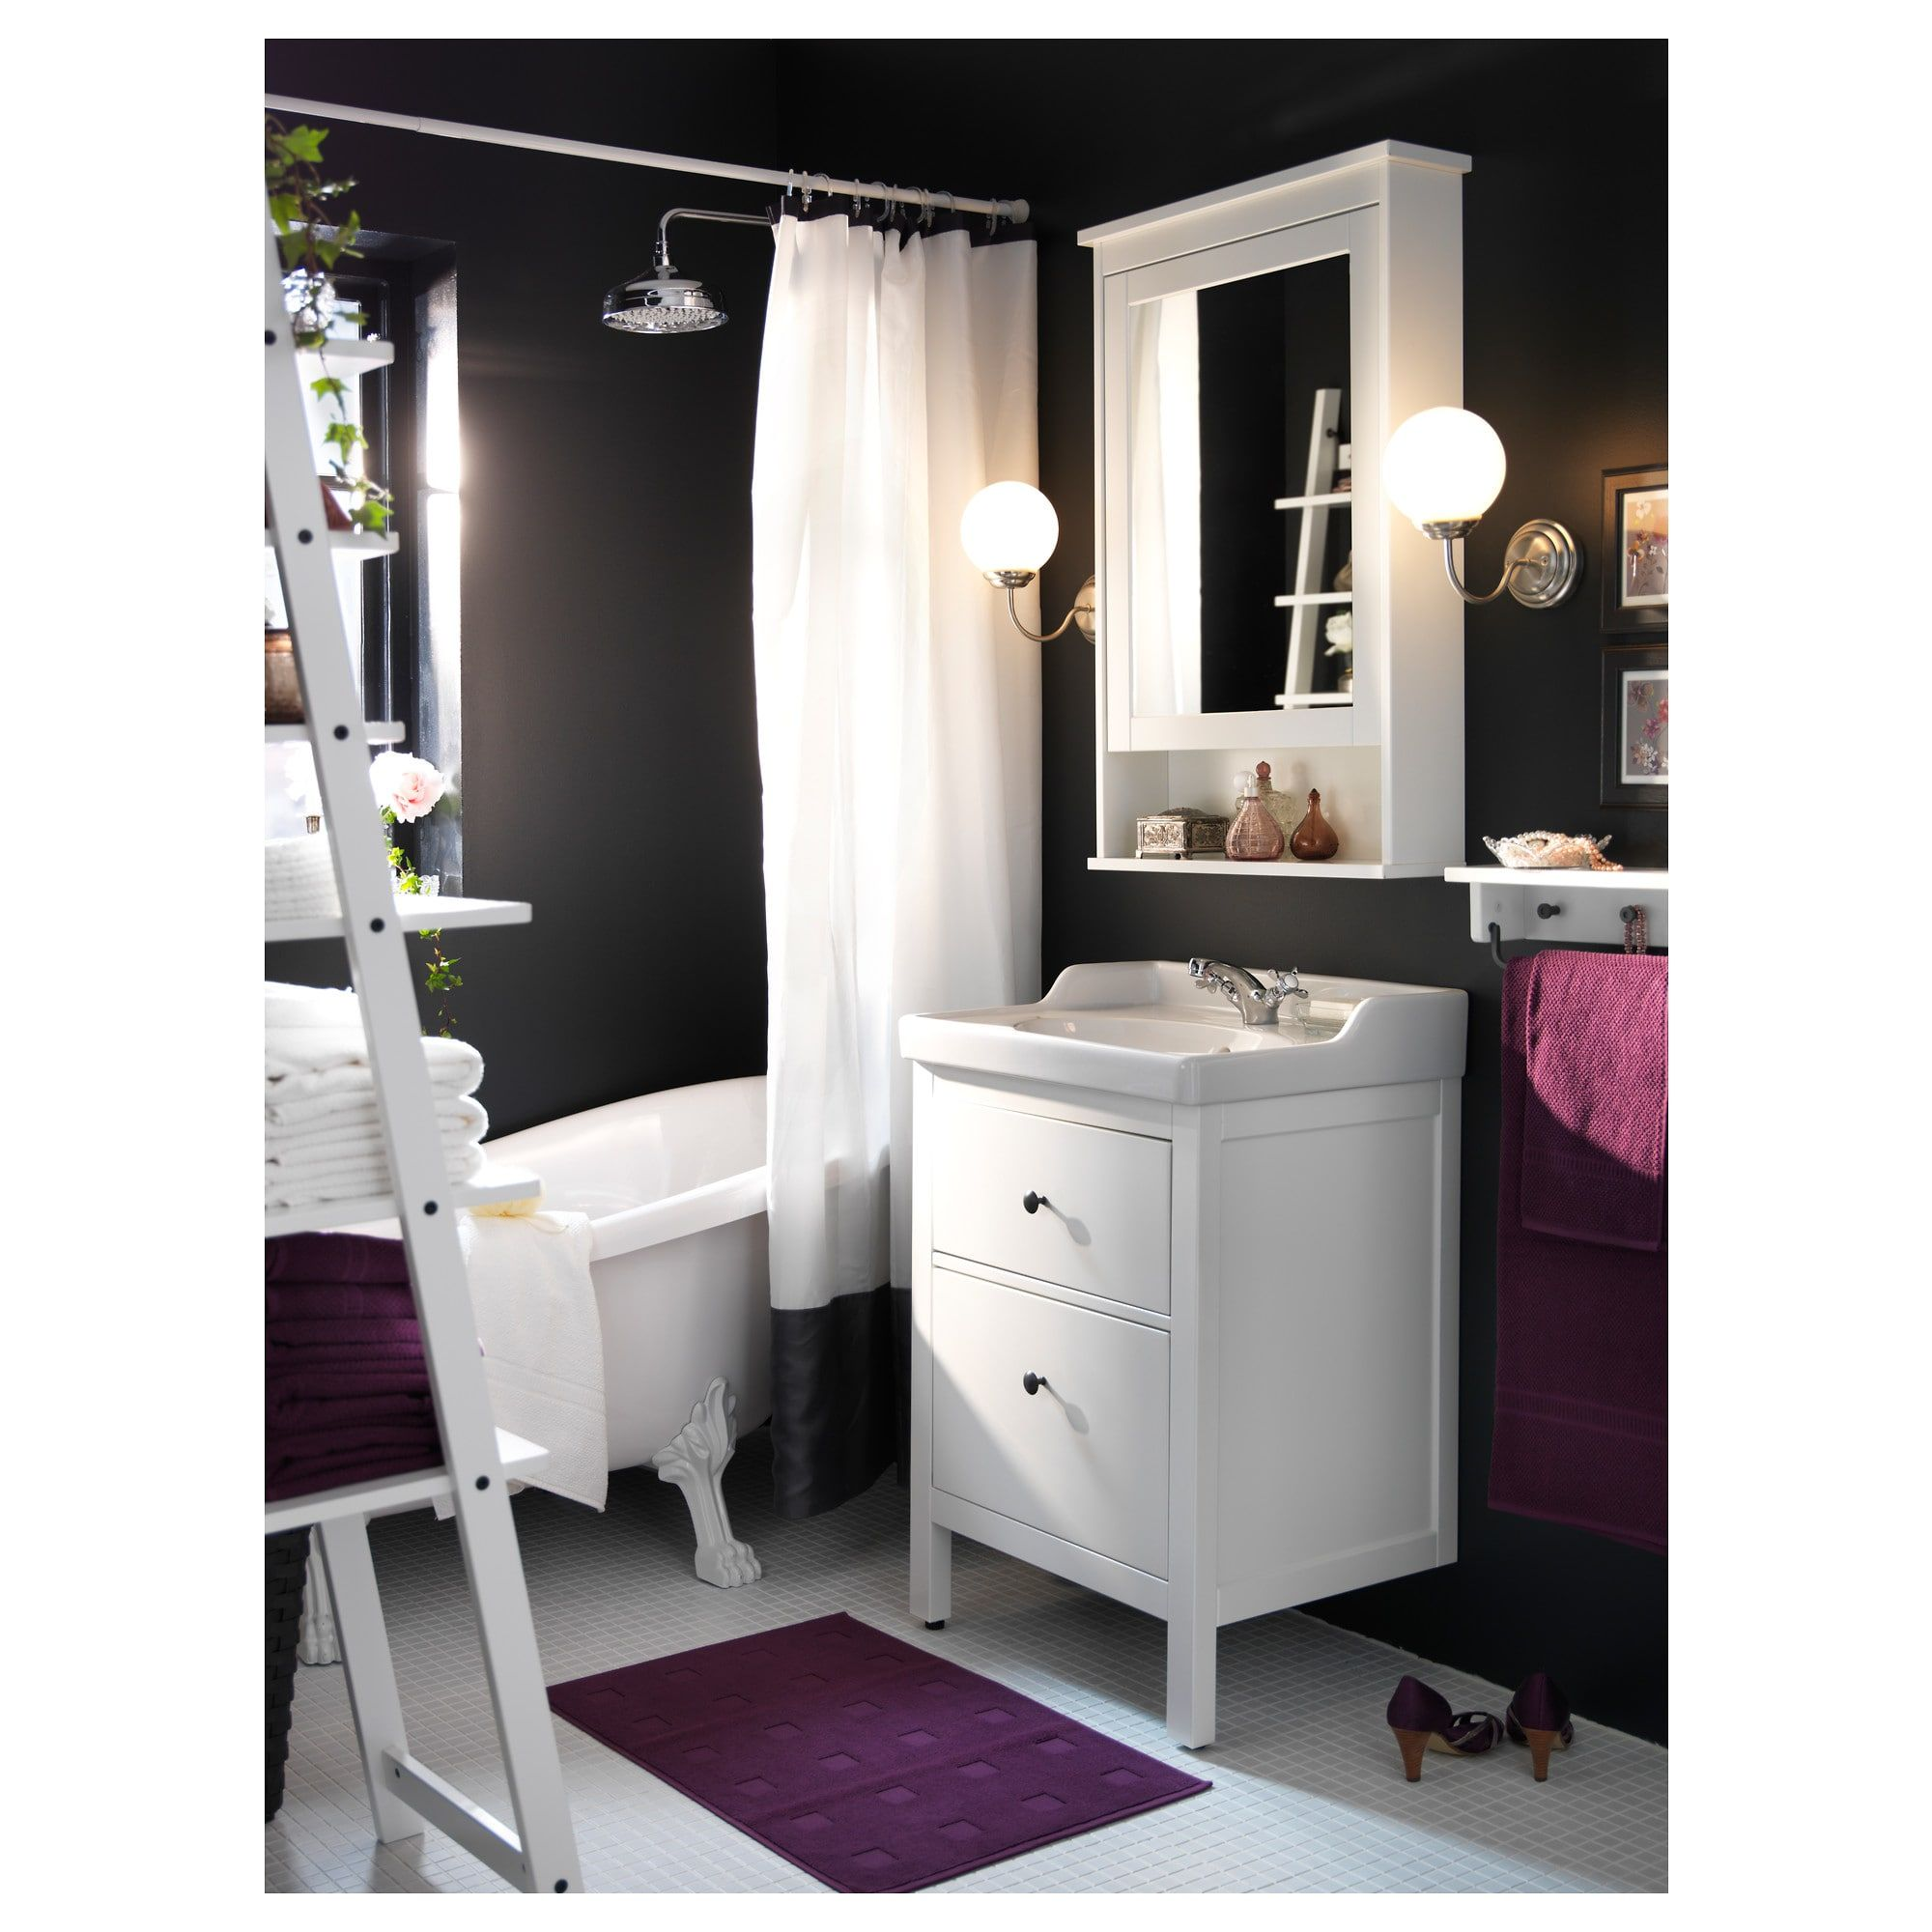 HEMNES Mirror cabinet with door white in Bathroom